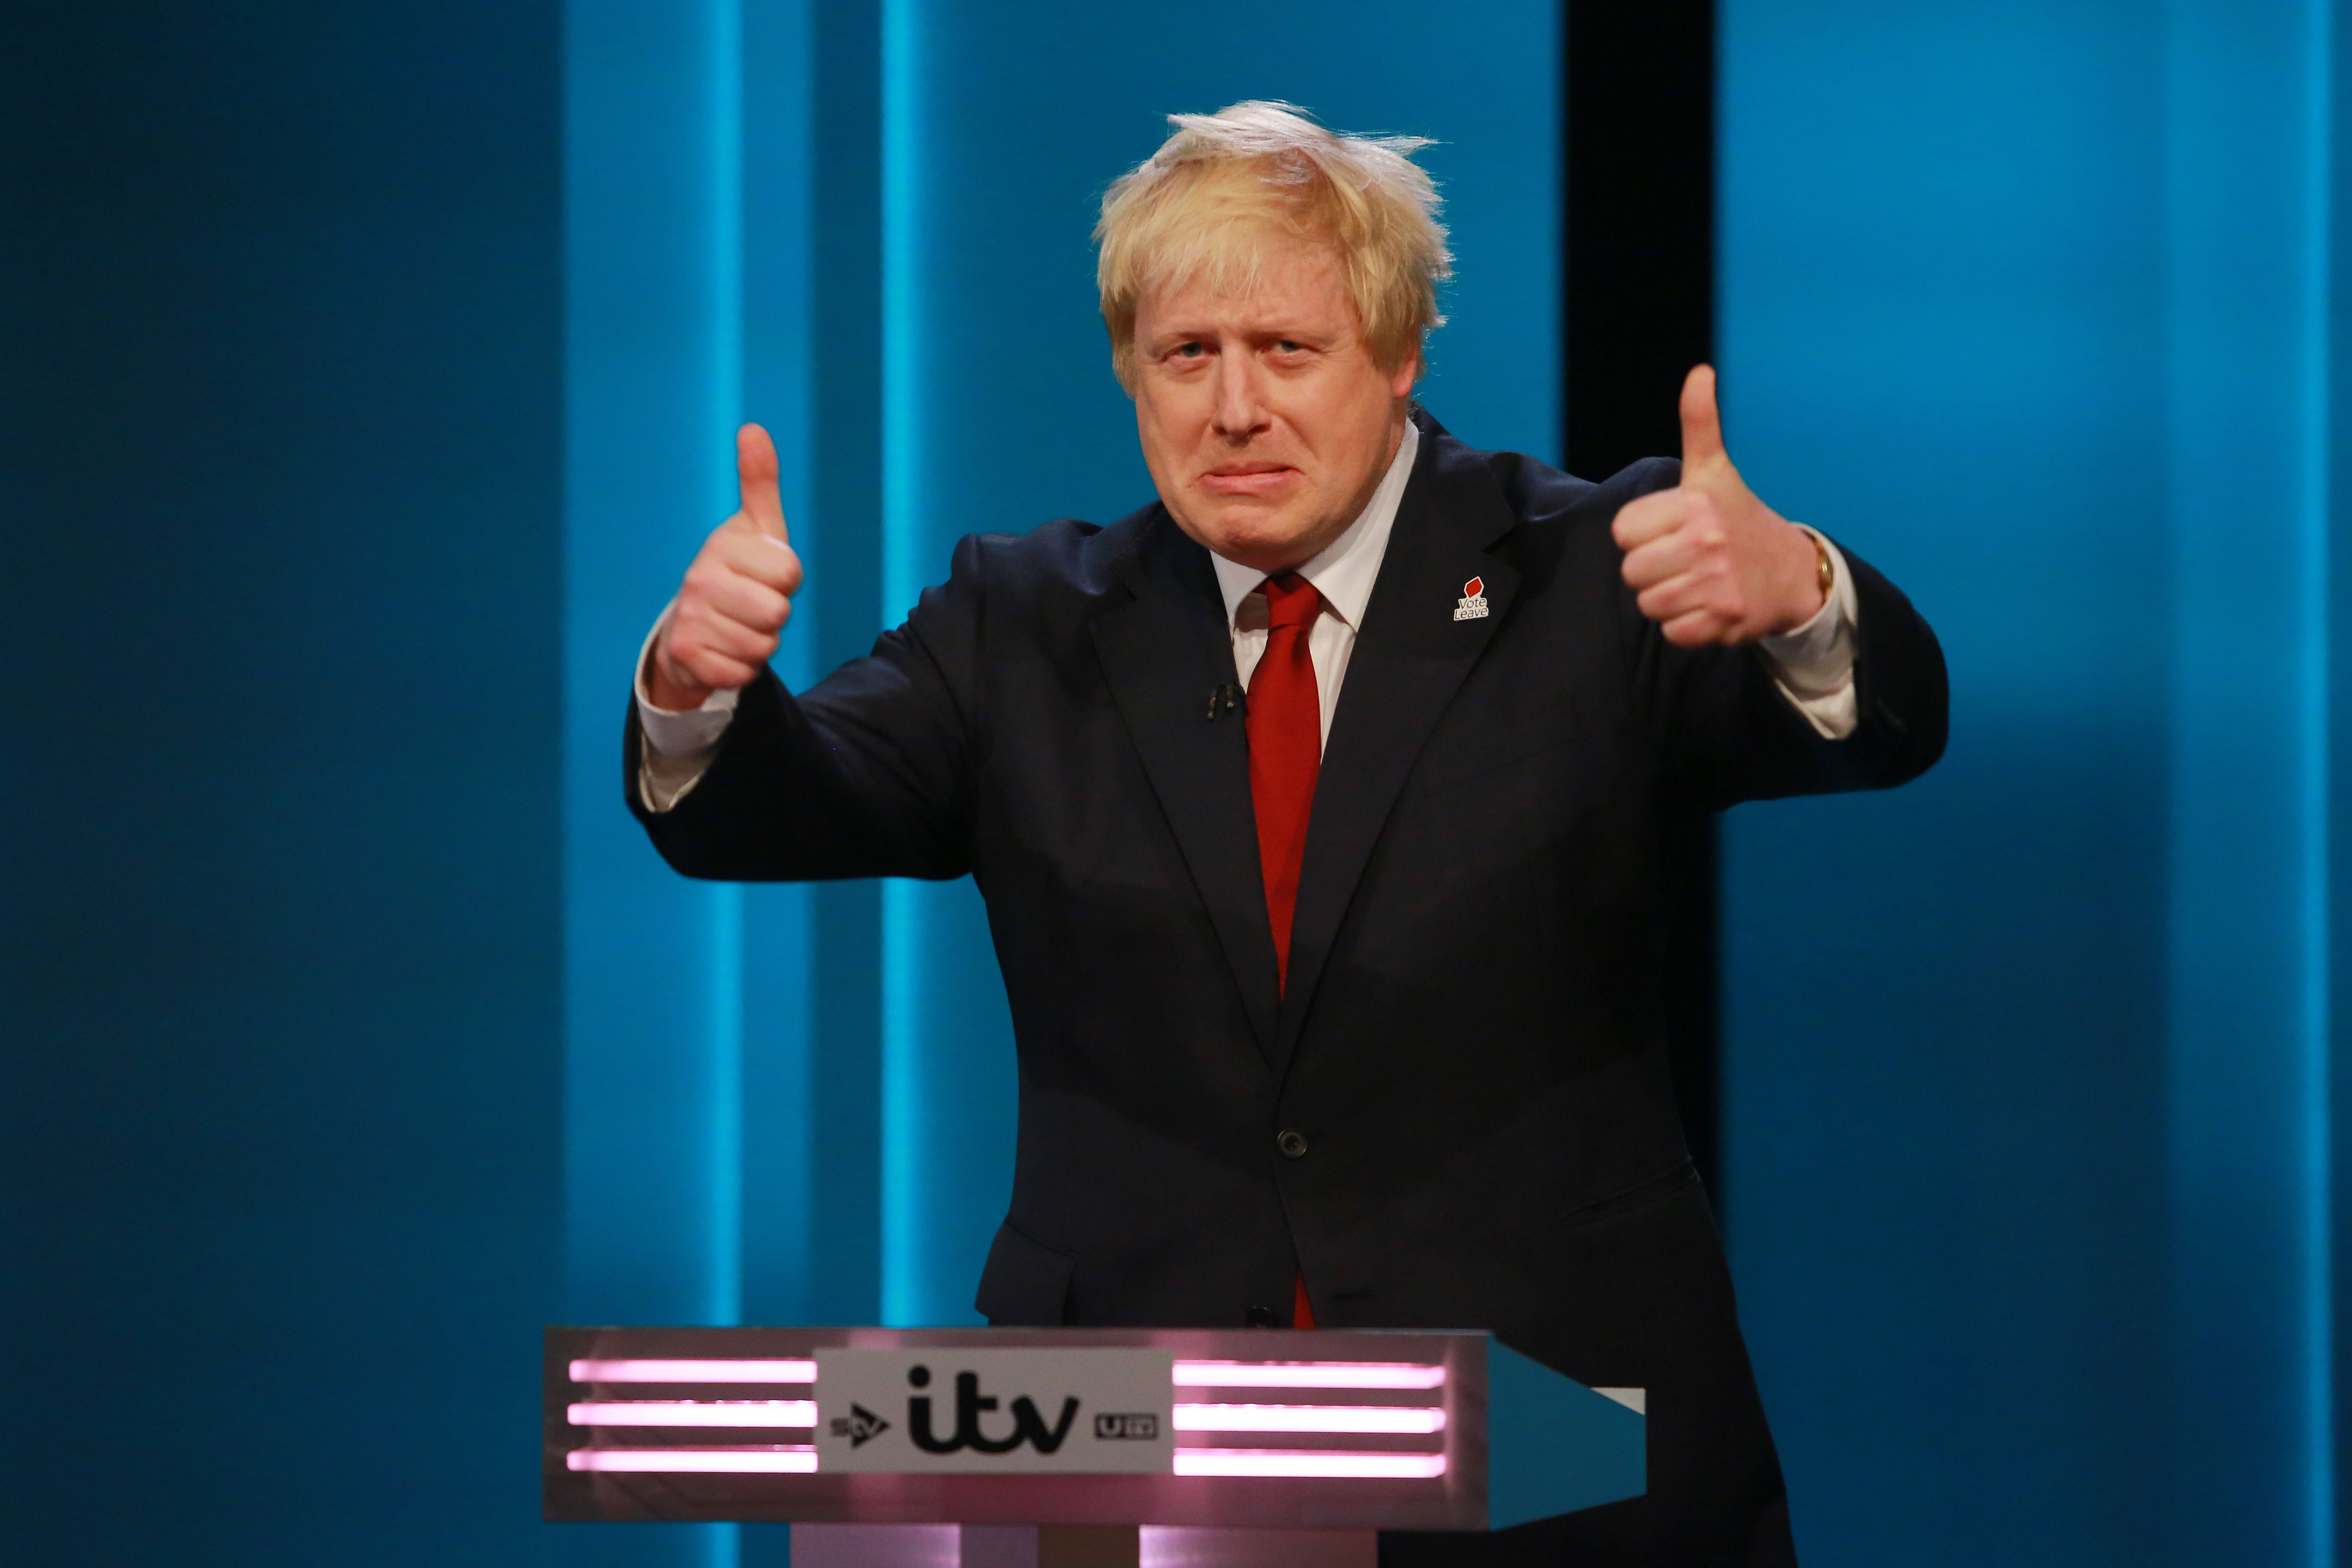 Boris Johnson And Nicola Sturgeon Debate The EU Referendum On ITV